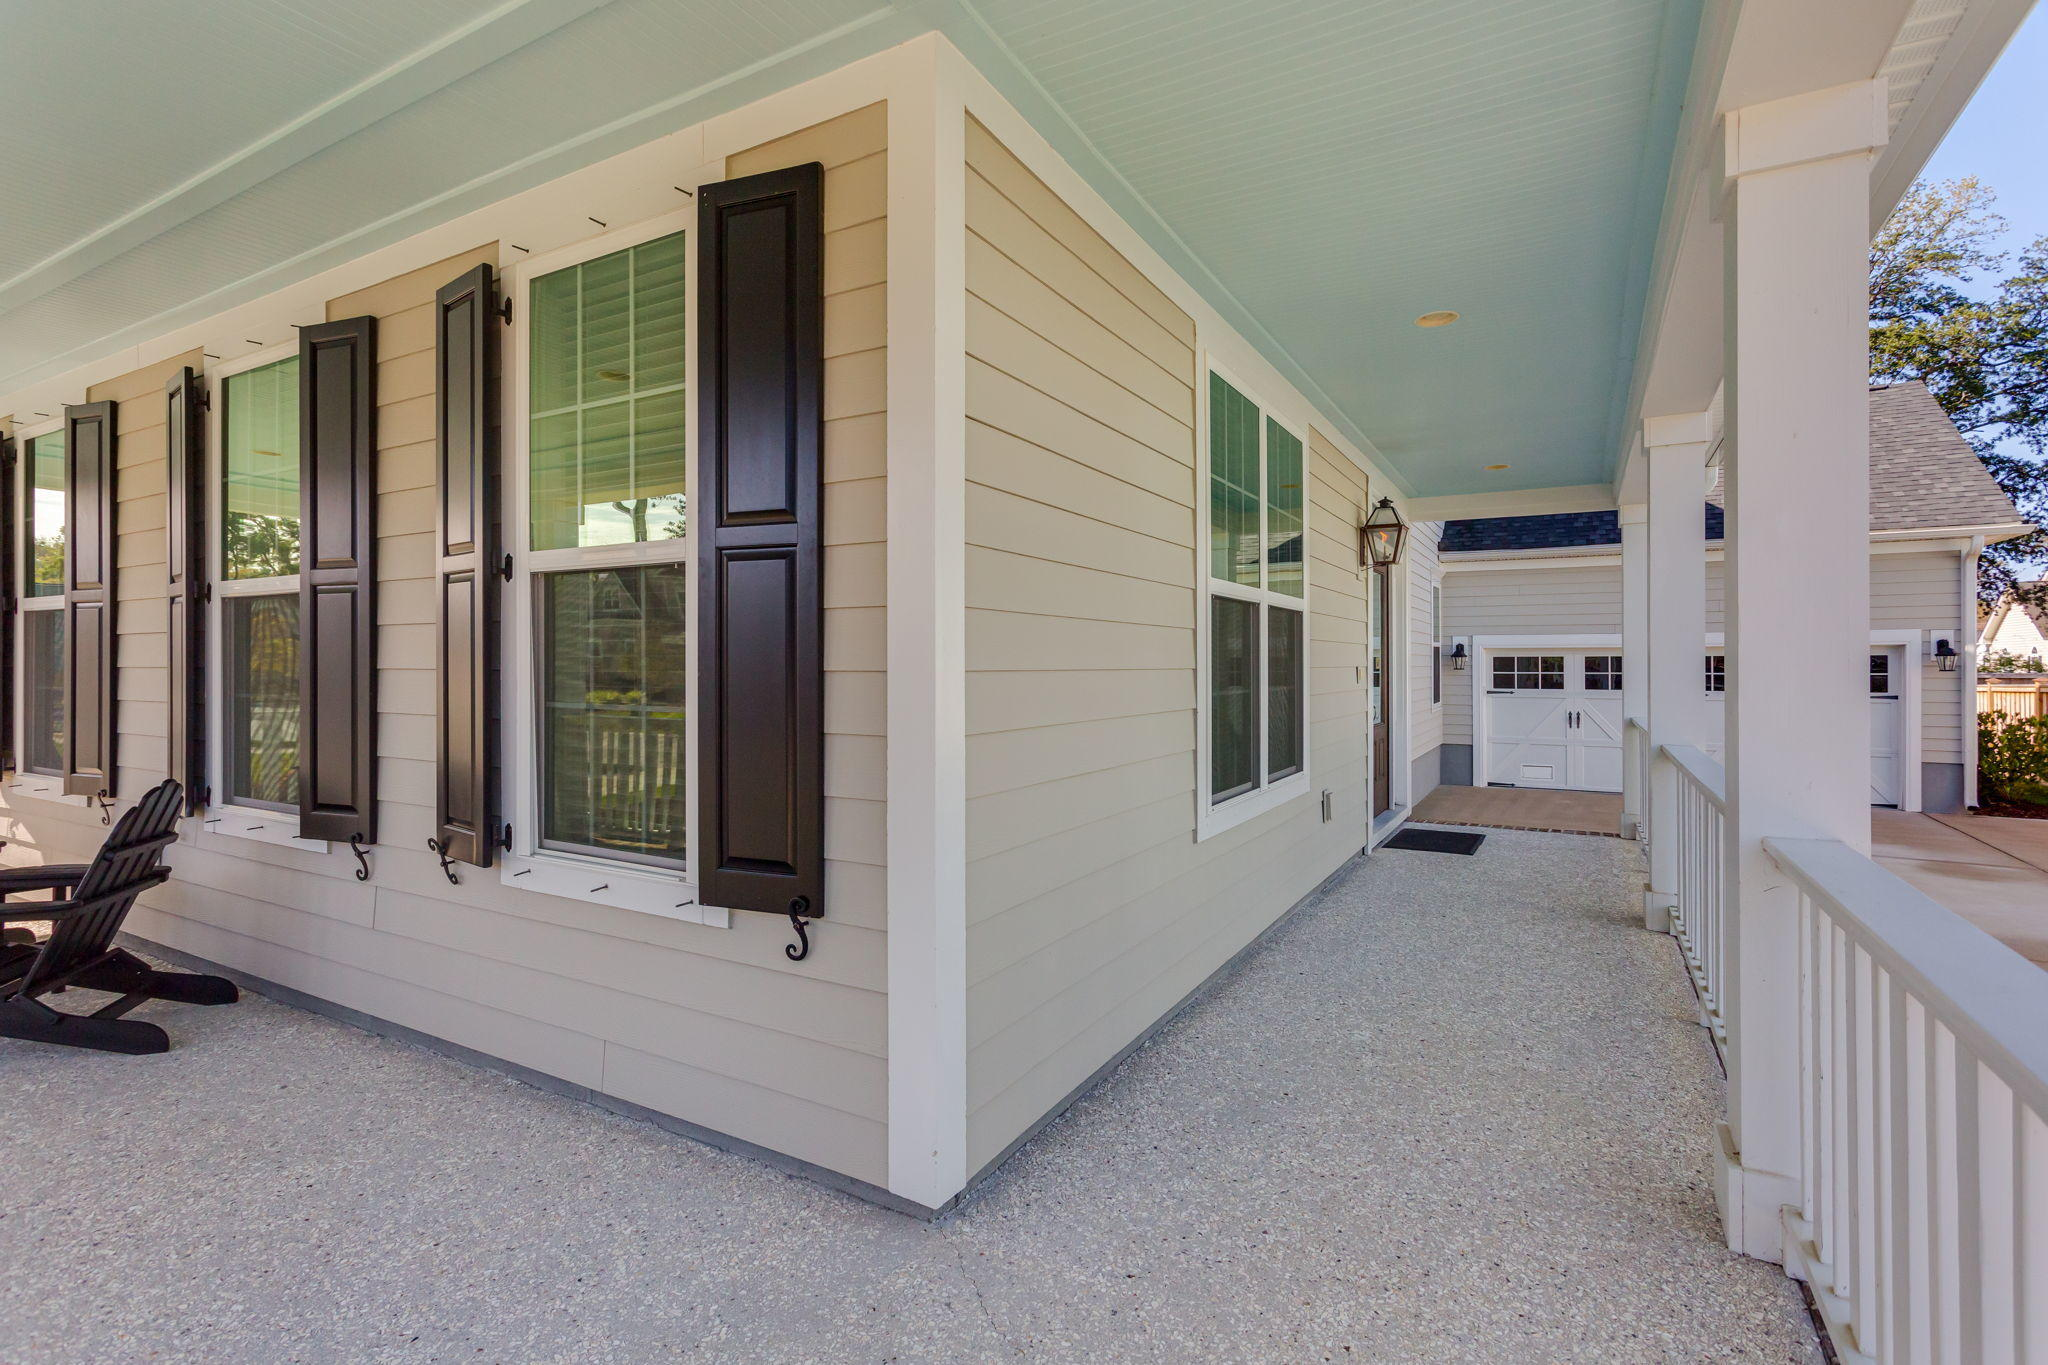 The Village at Stiles Point Homes For Sale - 849 Shutes Folly, Charleston, SC - 60